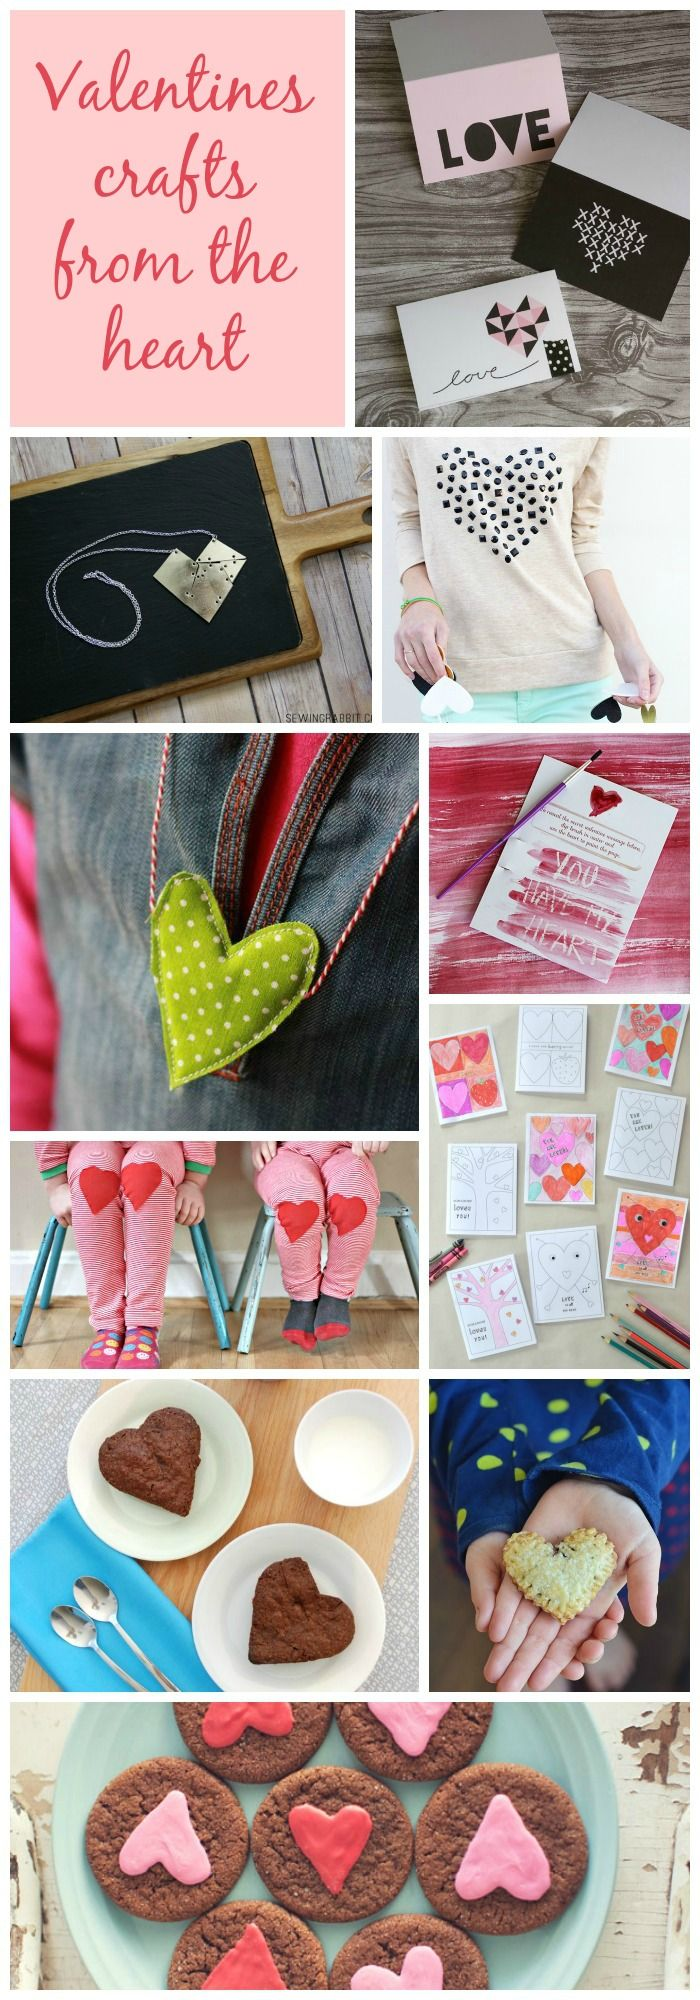 Gorgeous round up of heart shaped crafts and valentines ideas! Nutella tarts -- yum!